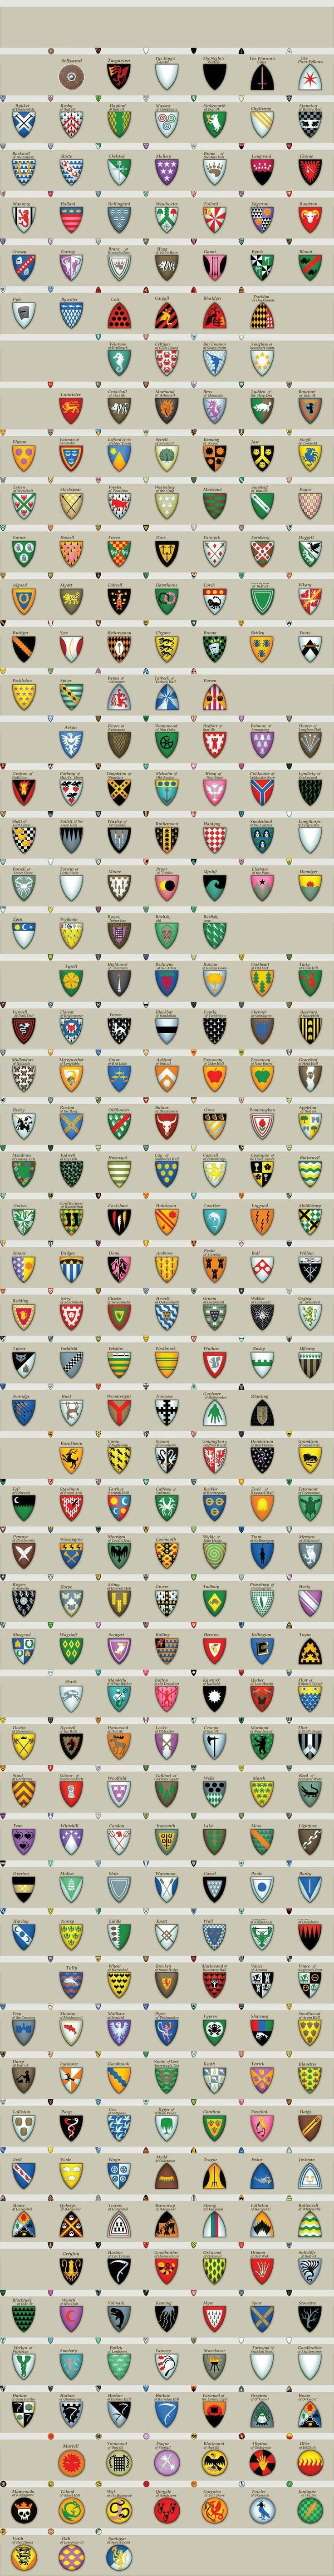 The Sigils / Banners from the world of the Game of Thrones